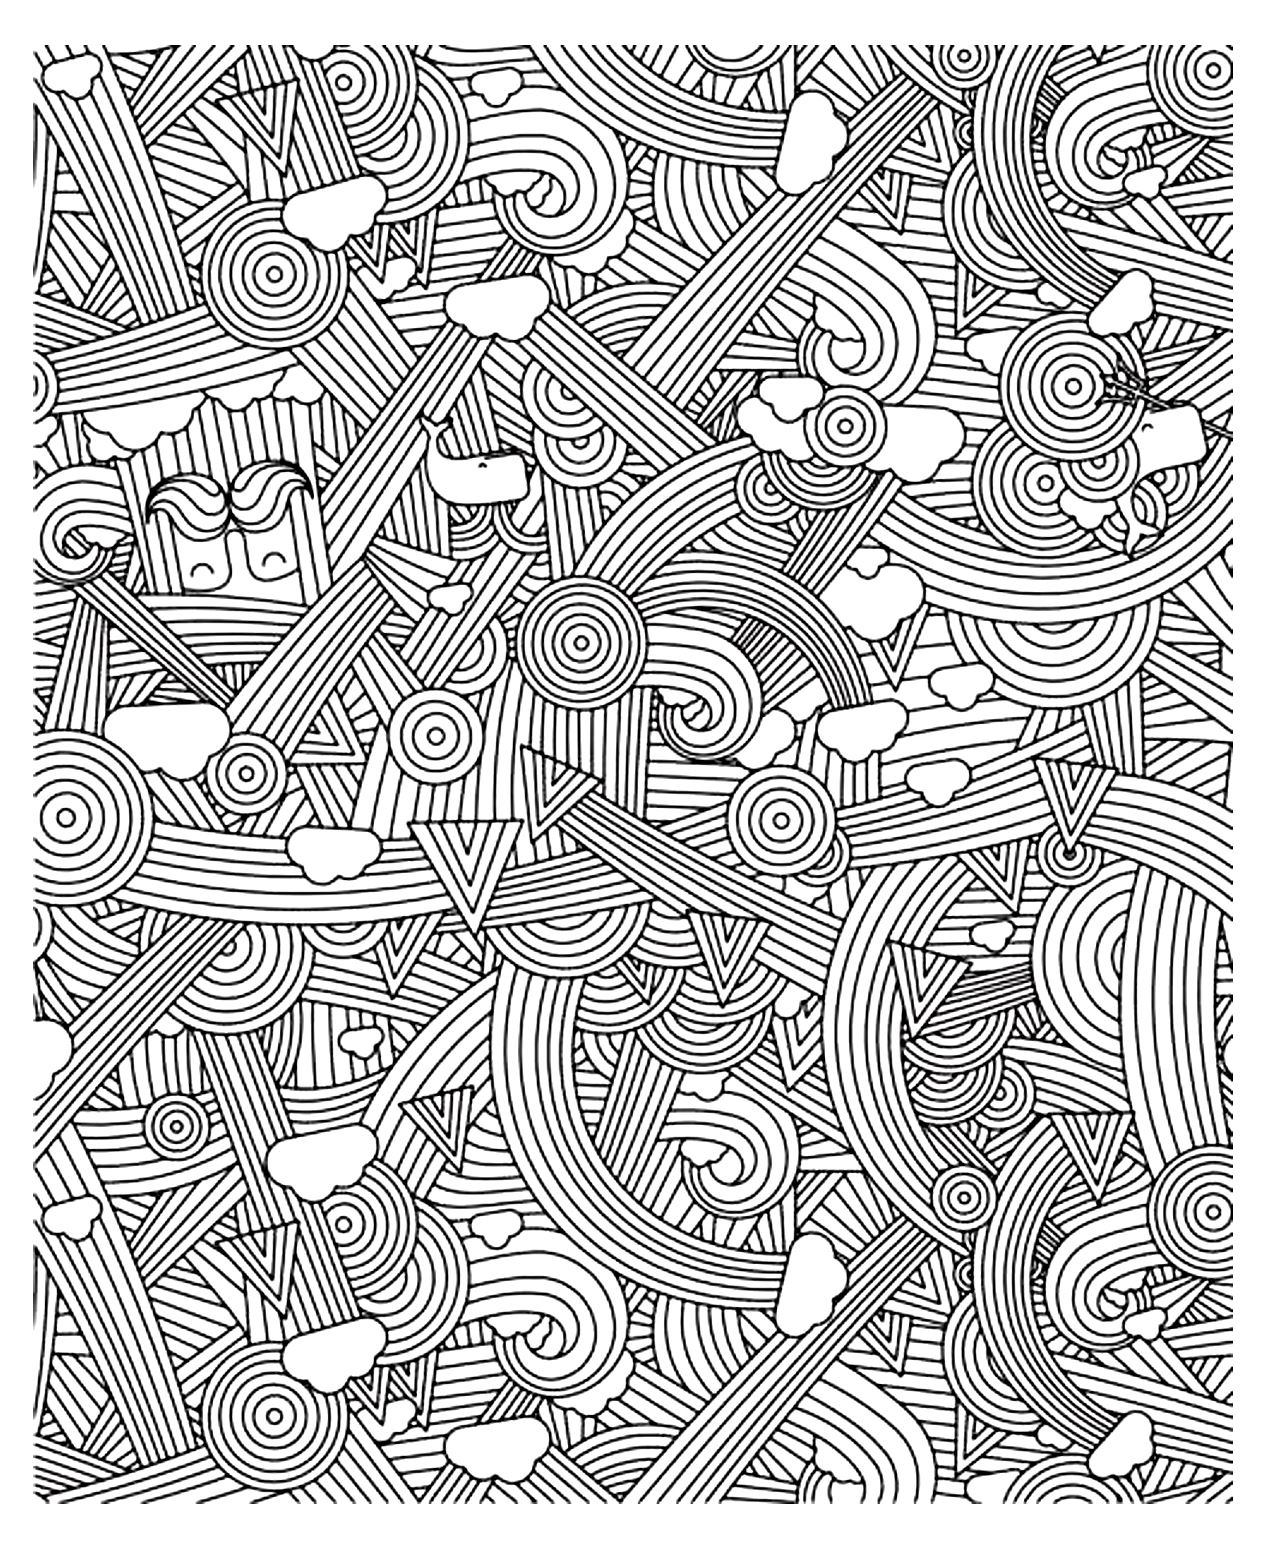 Anti stress colouring pages for adults - Coloring Adult Zen Anti Stress To Print Rainbows Free